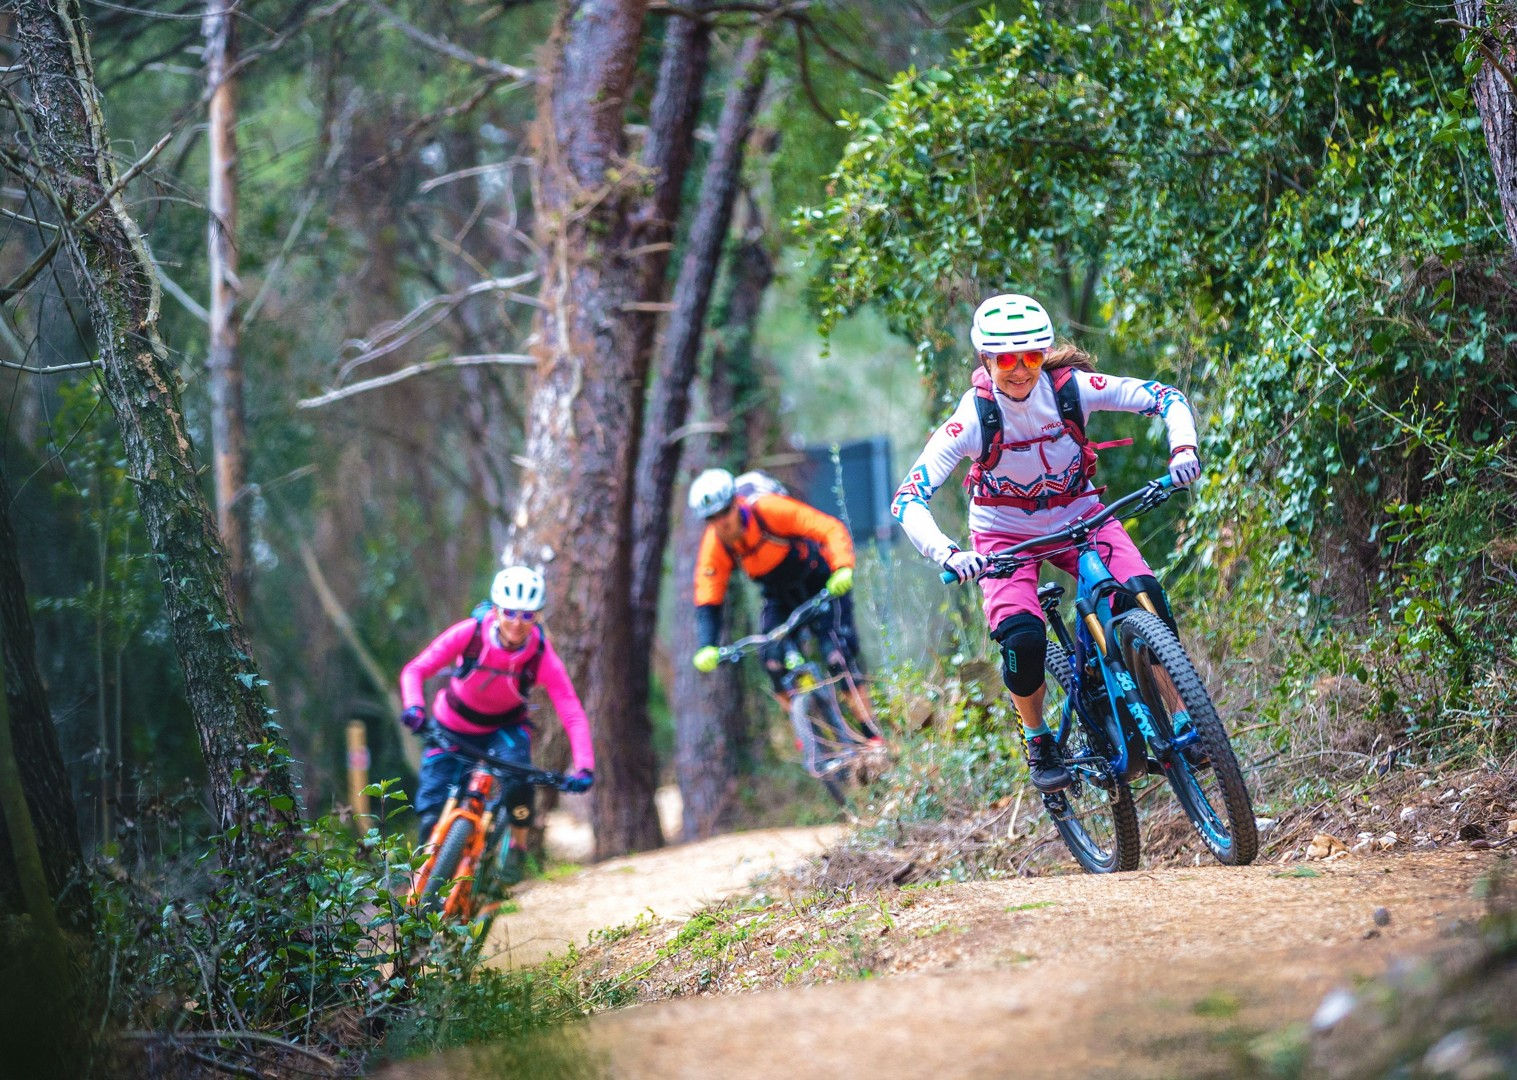 motovun-electric-mountain-bike-tour-in-croatia-terra-magica-skedaddle.jpg - NEW! Croatia - Terra Magica - eMTB - Mountain Biking